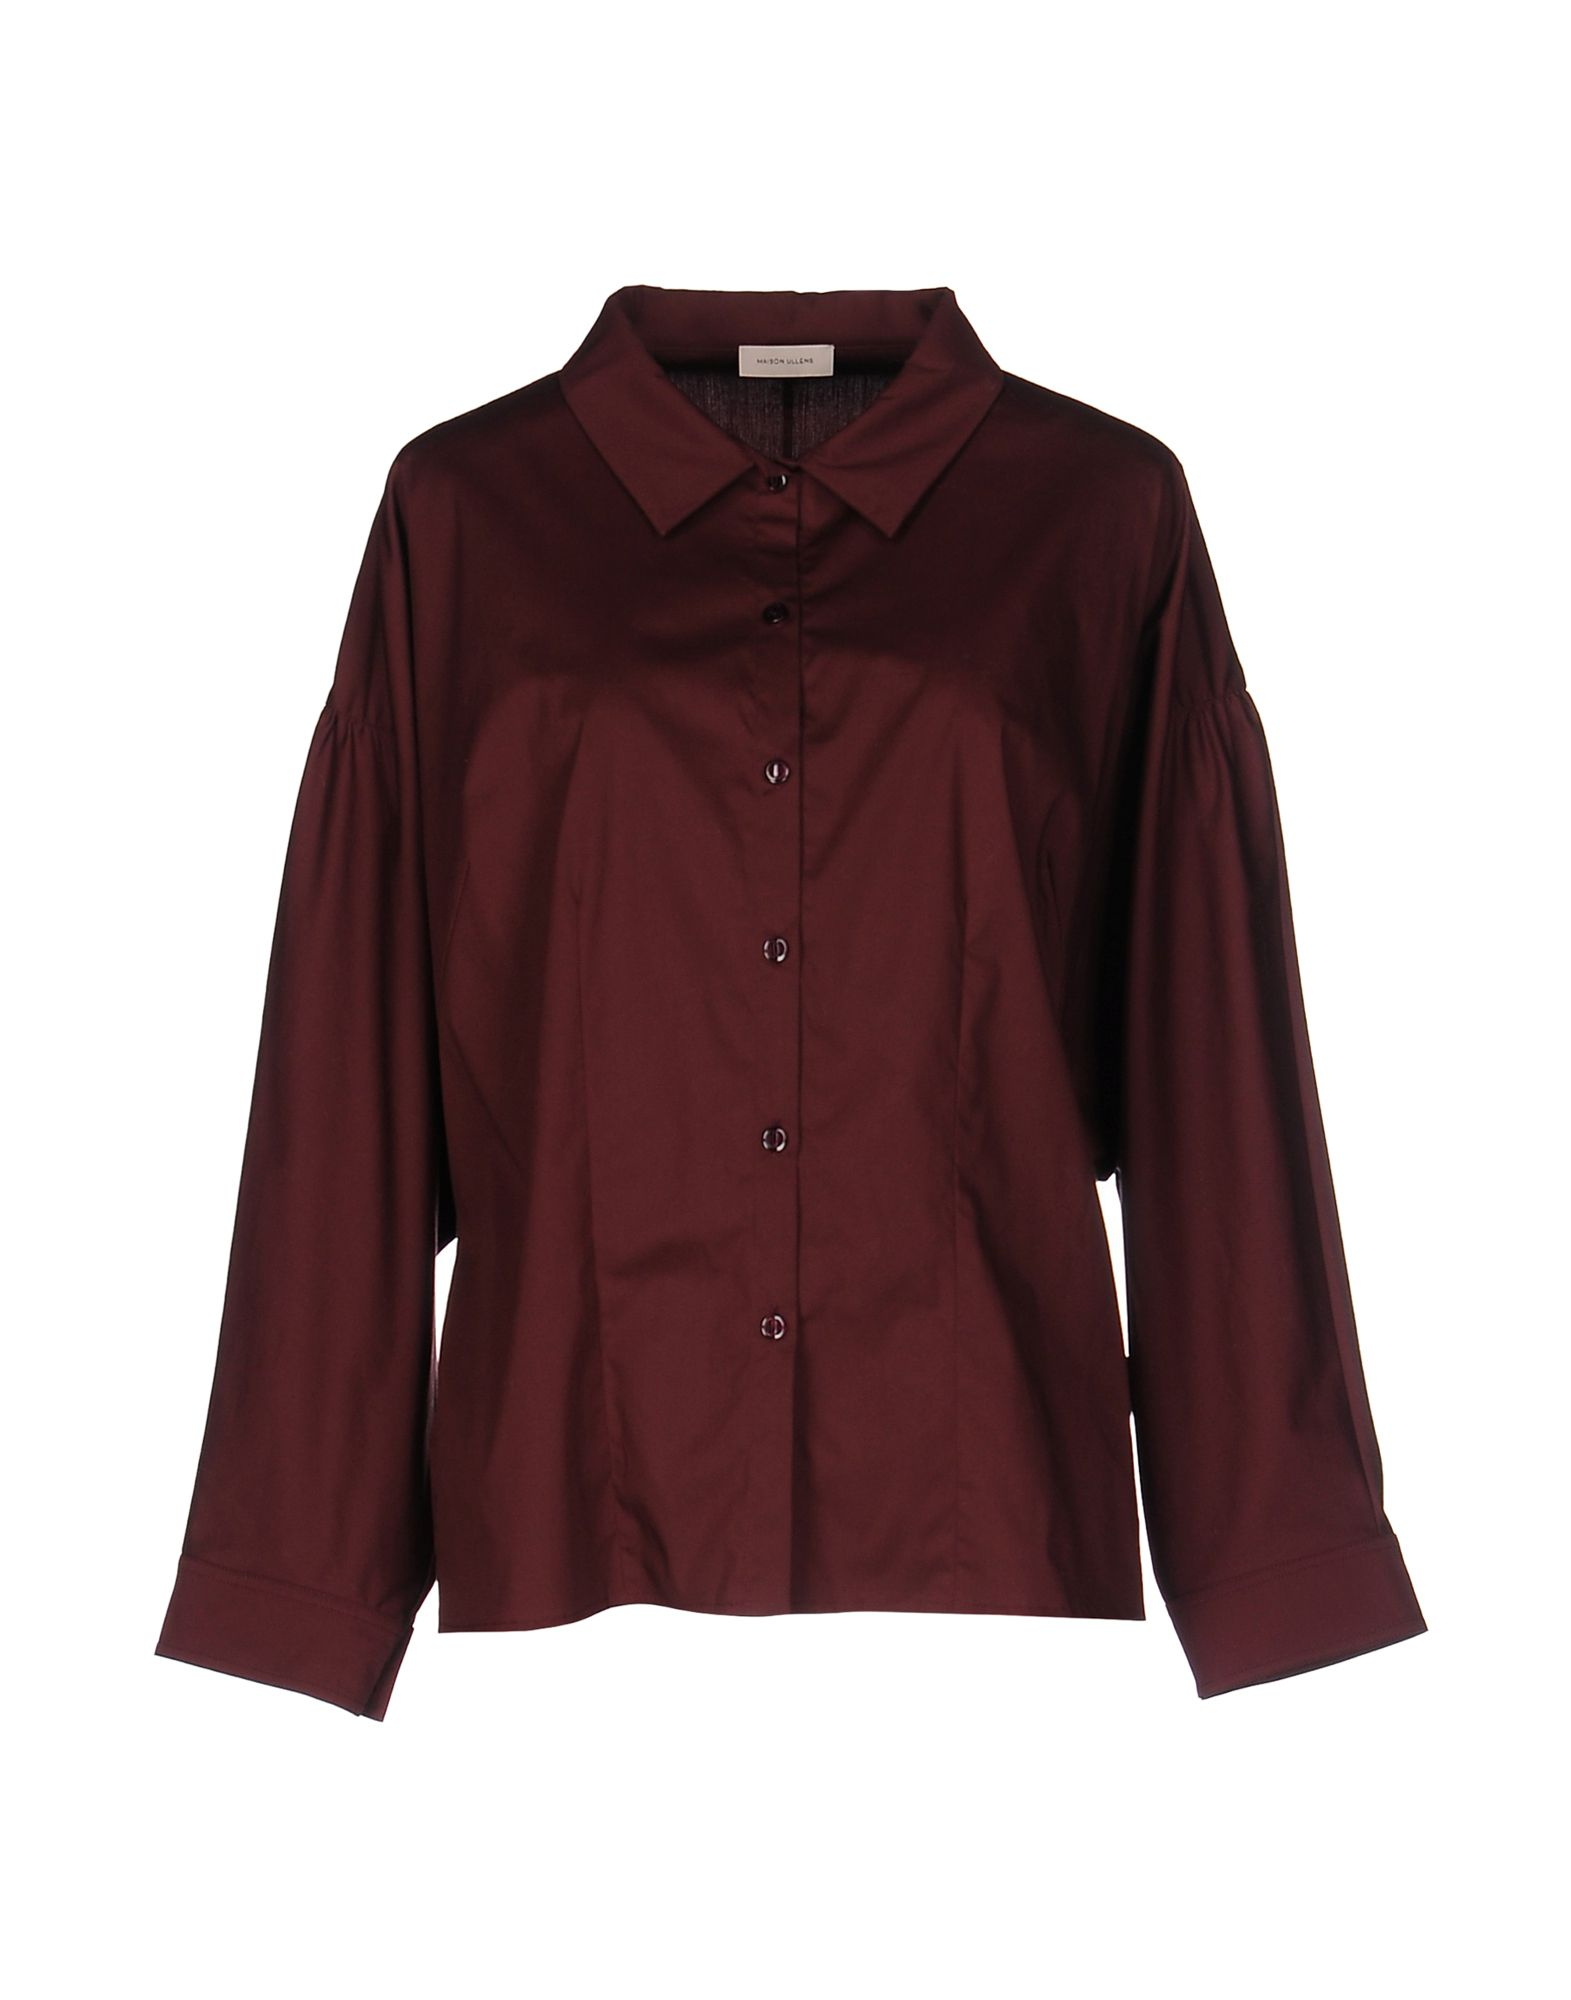 MAISON ULLENS Solid Color Shirts & Blouses in Maroon